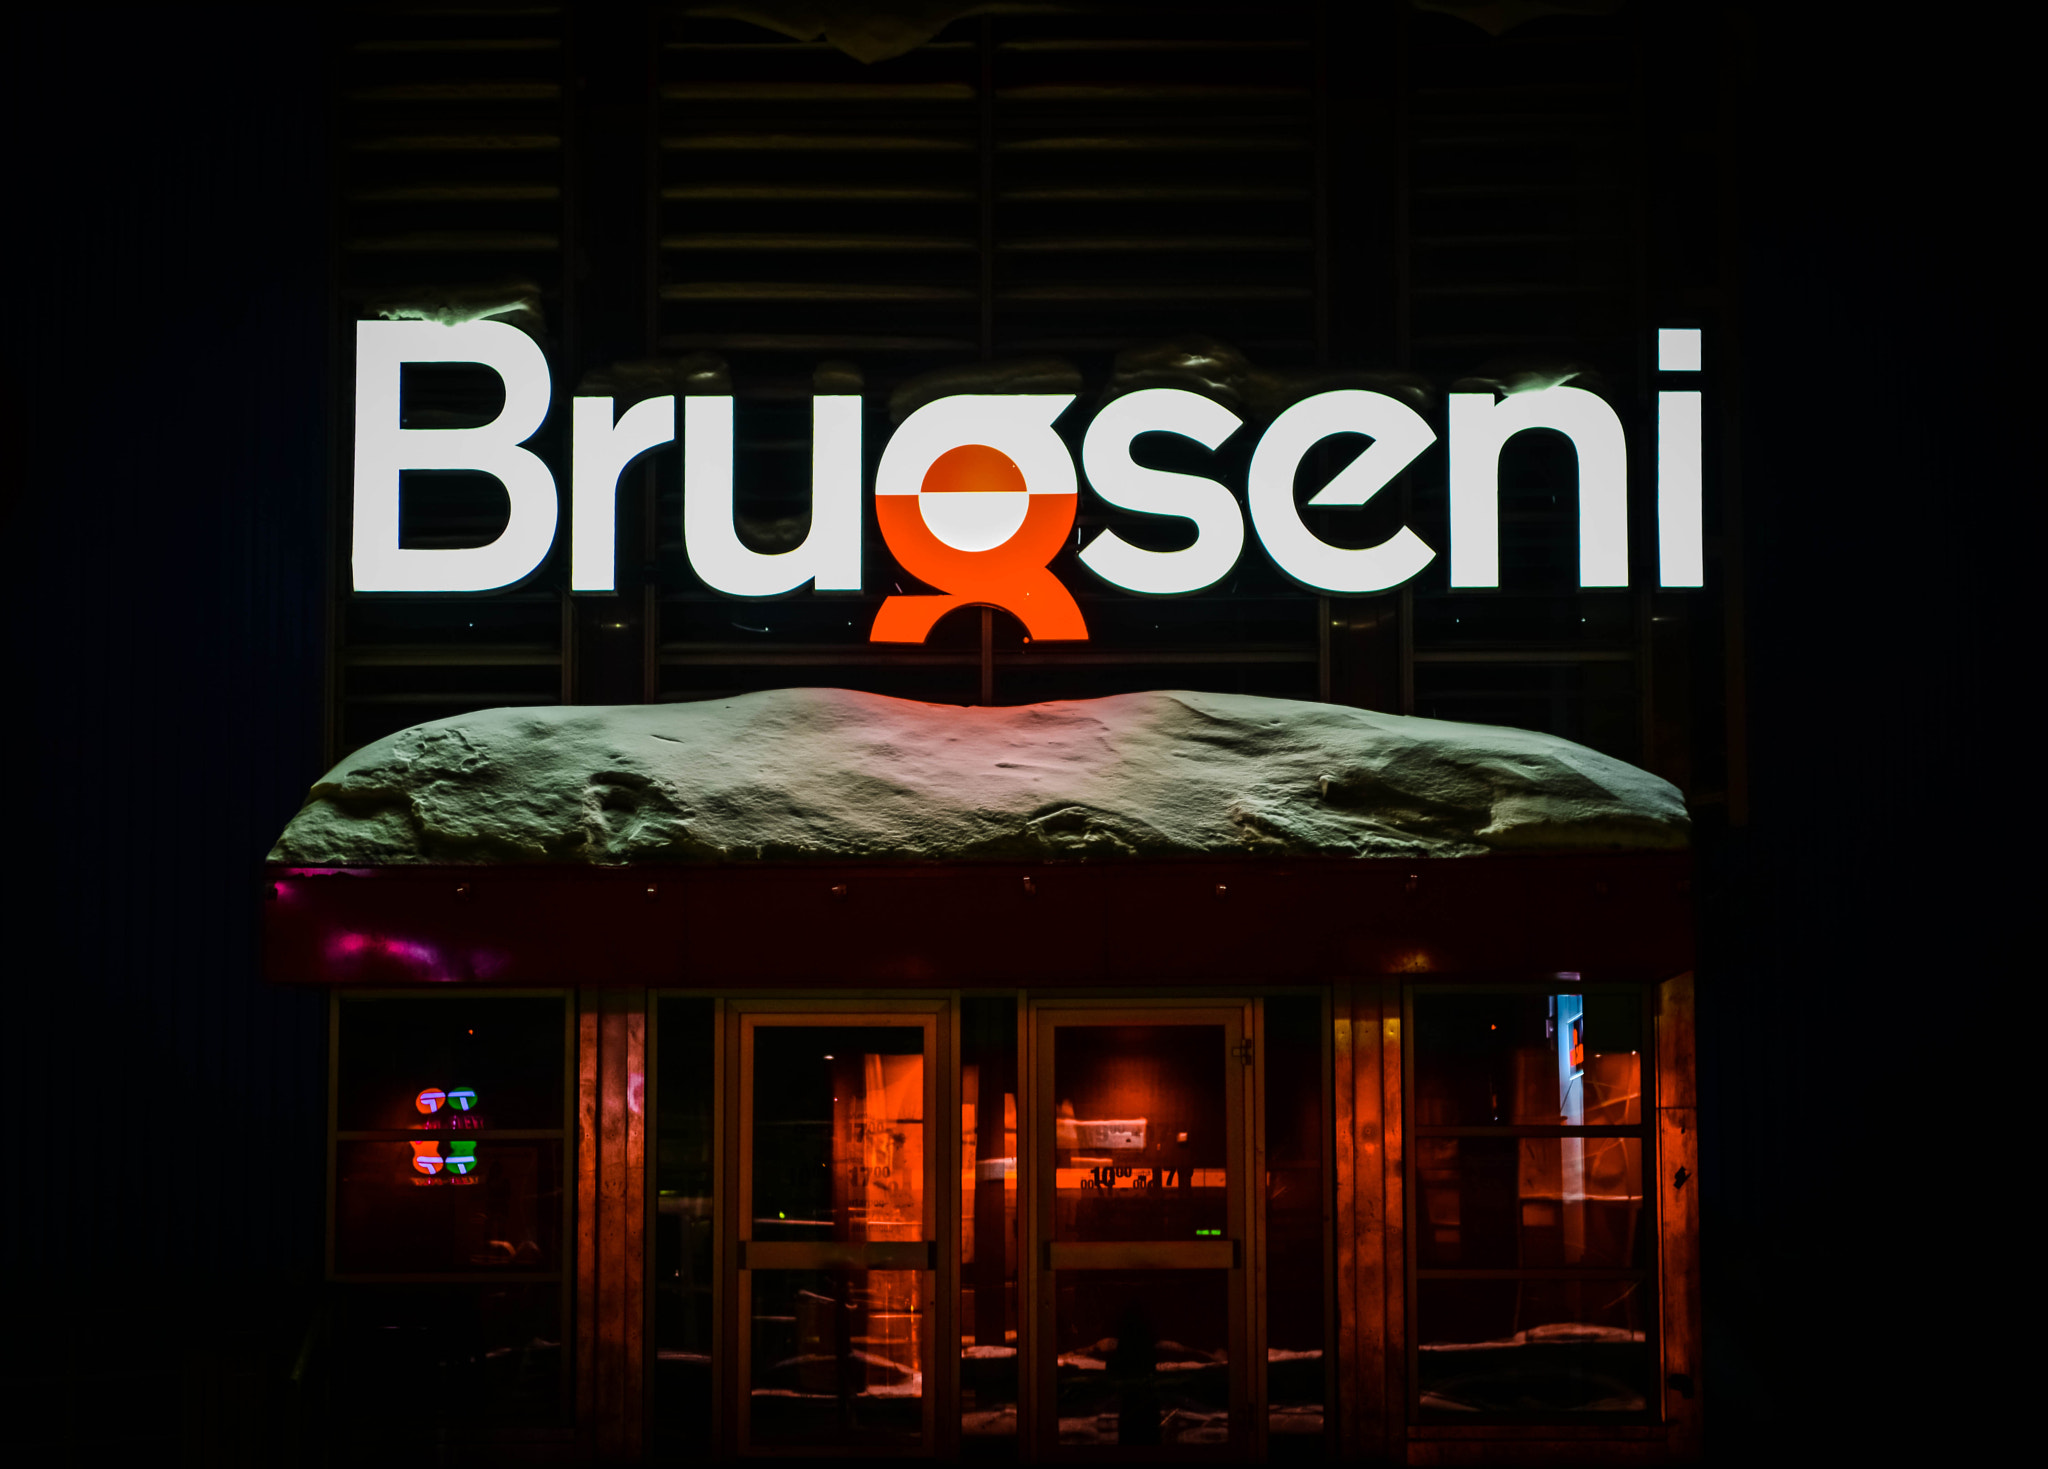 Photograph Brugseni by Milo Rosing on 500px